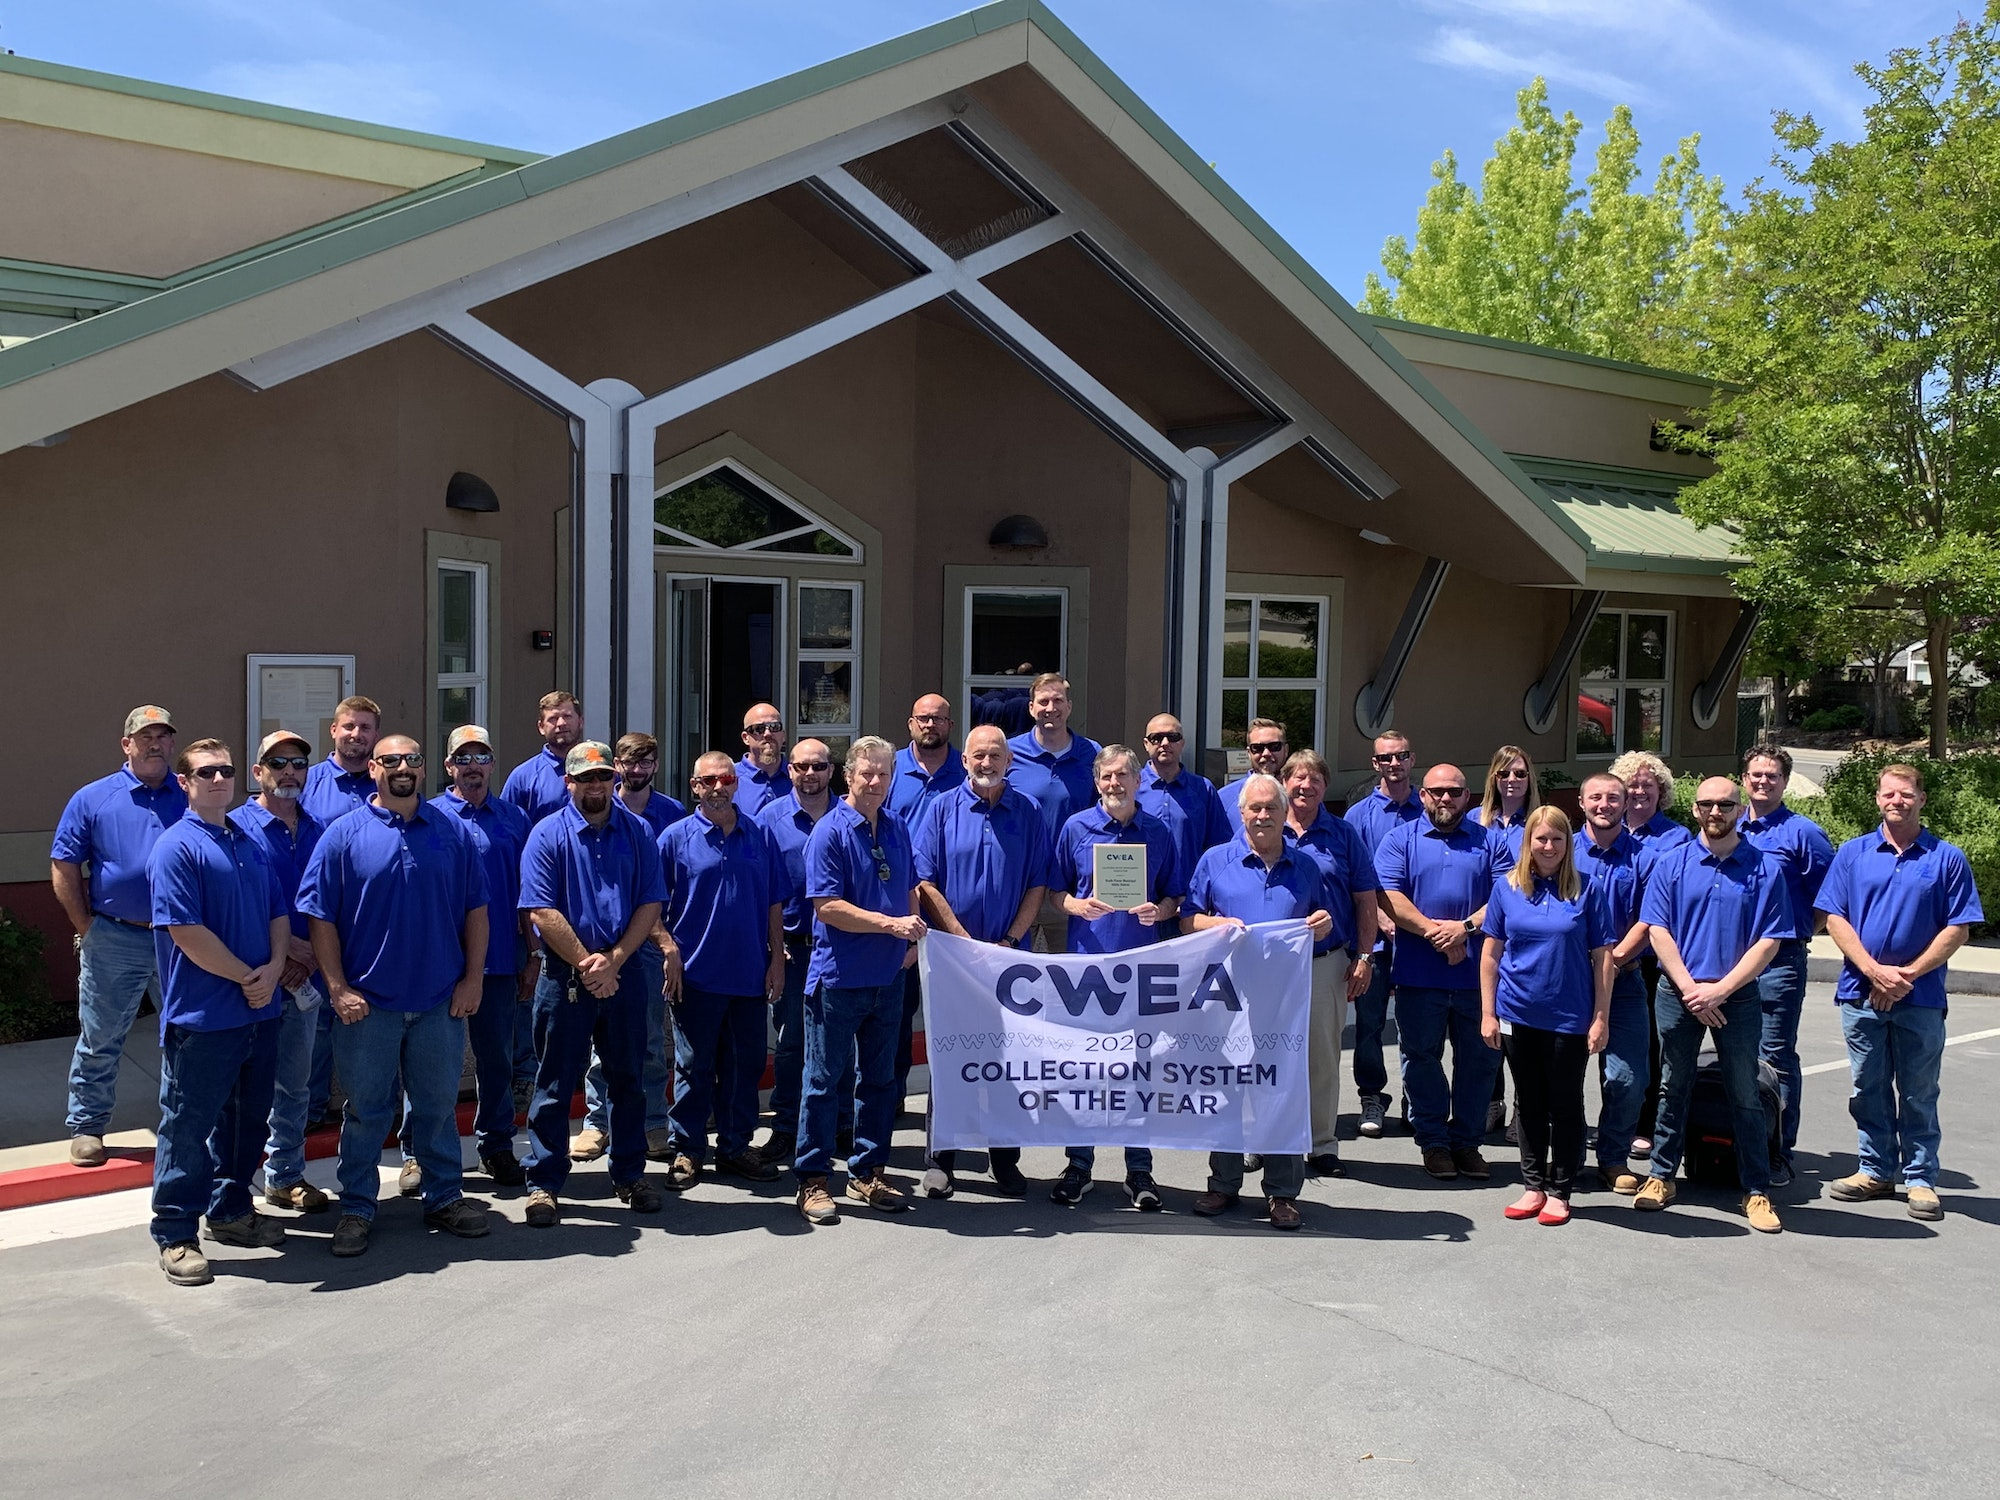 CWEA Collection System of the Year Staff Photo